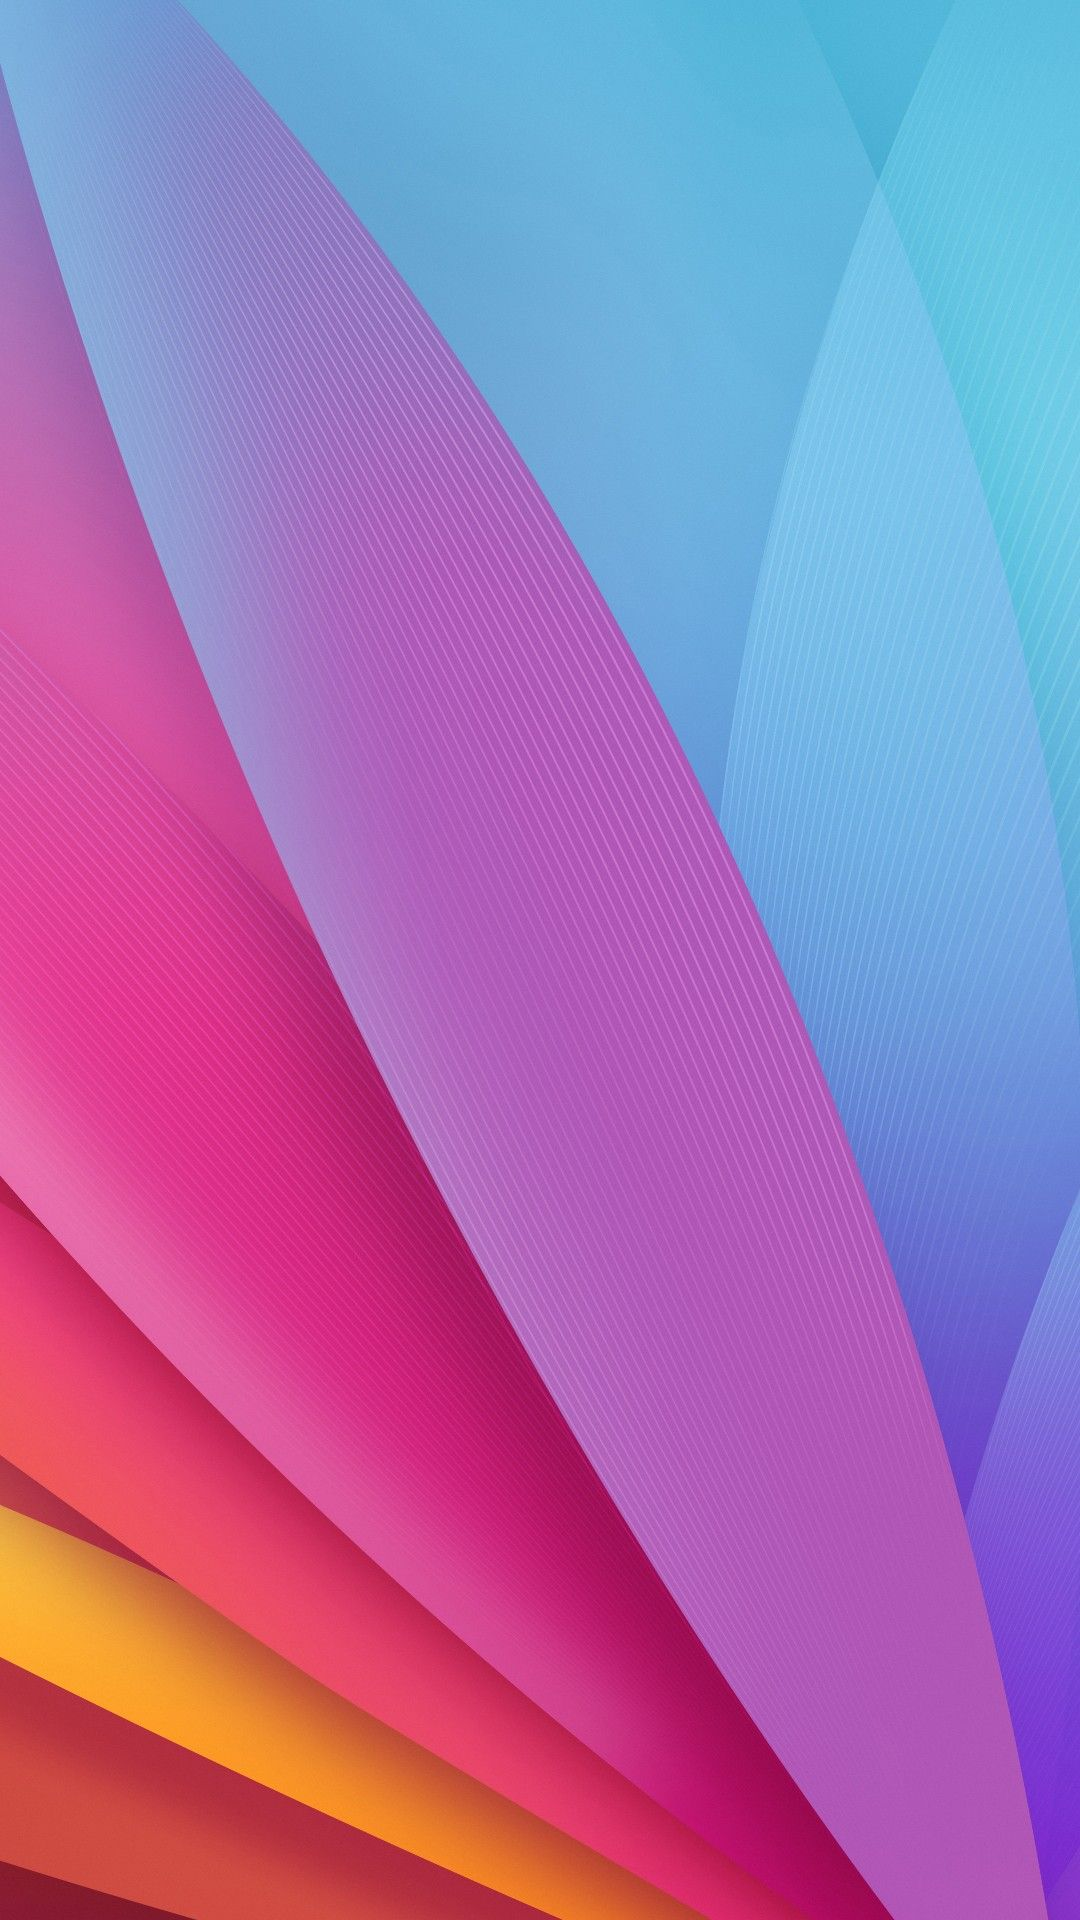 Abstract Colorful Abstract Wallpapers Hd 4k Background For Android Abstract Wallpaper Backgrounds Qhd Wallpaper 1080p Wallpaper